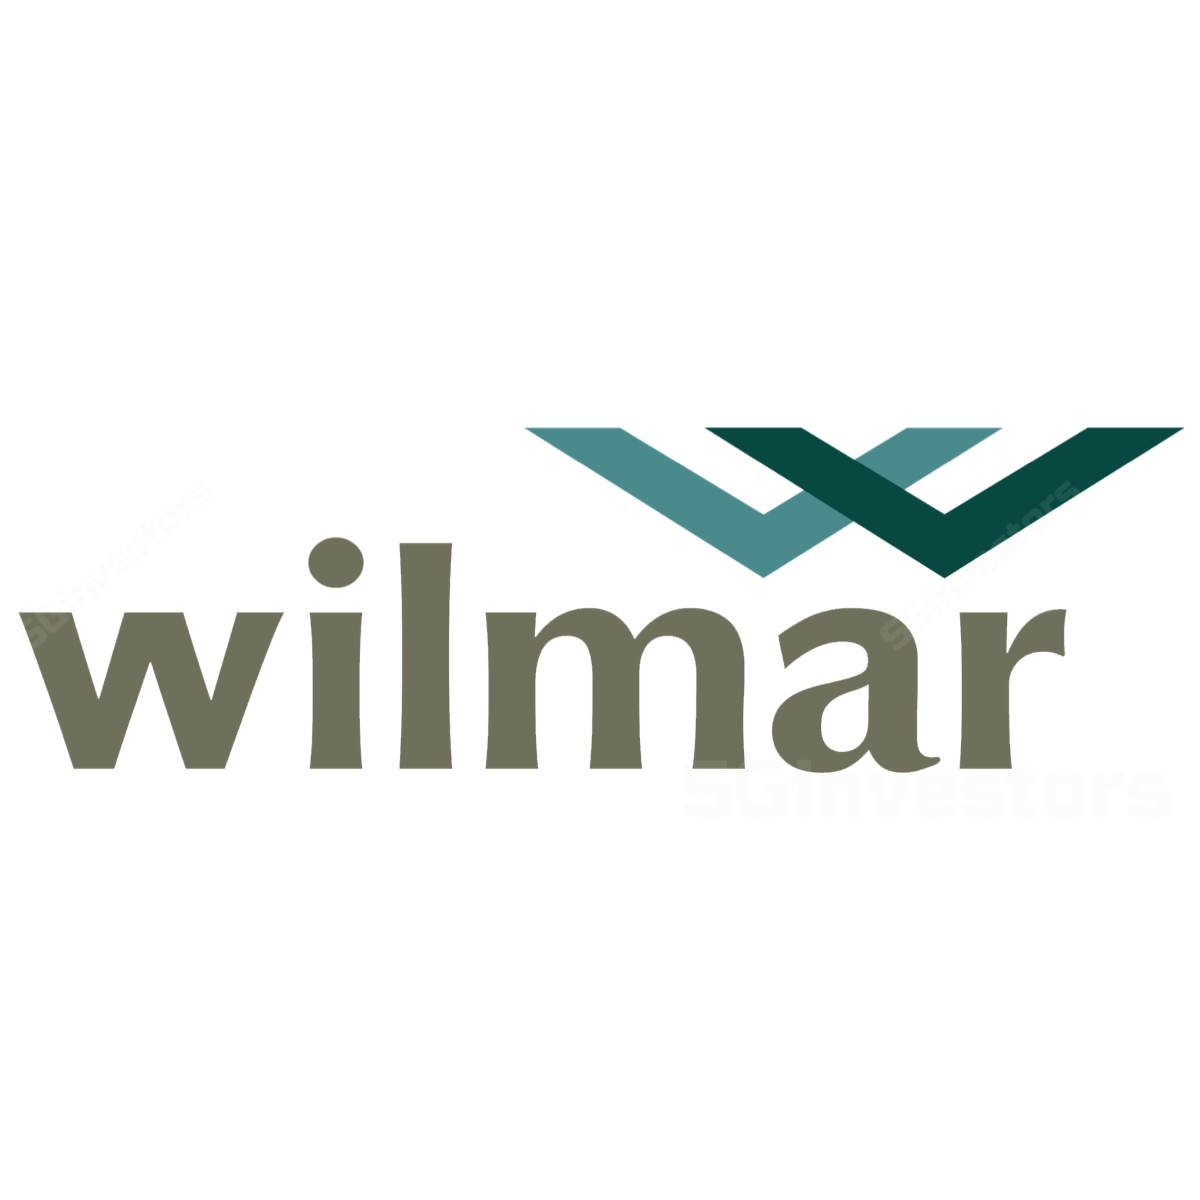 Wilmar International - DBS Vickers 2017-04-11: Spot crush margins in China turn negative